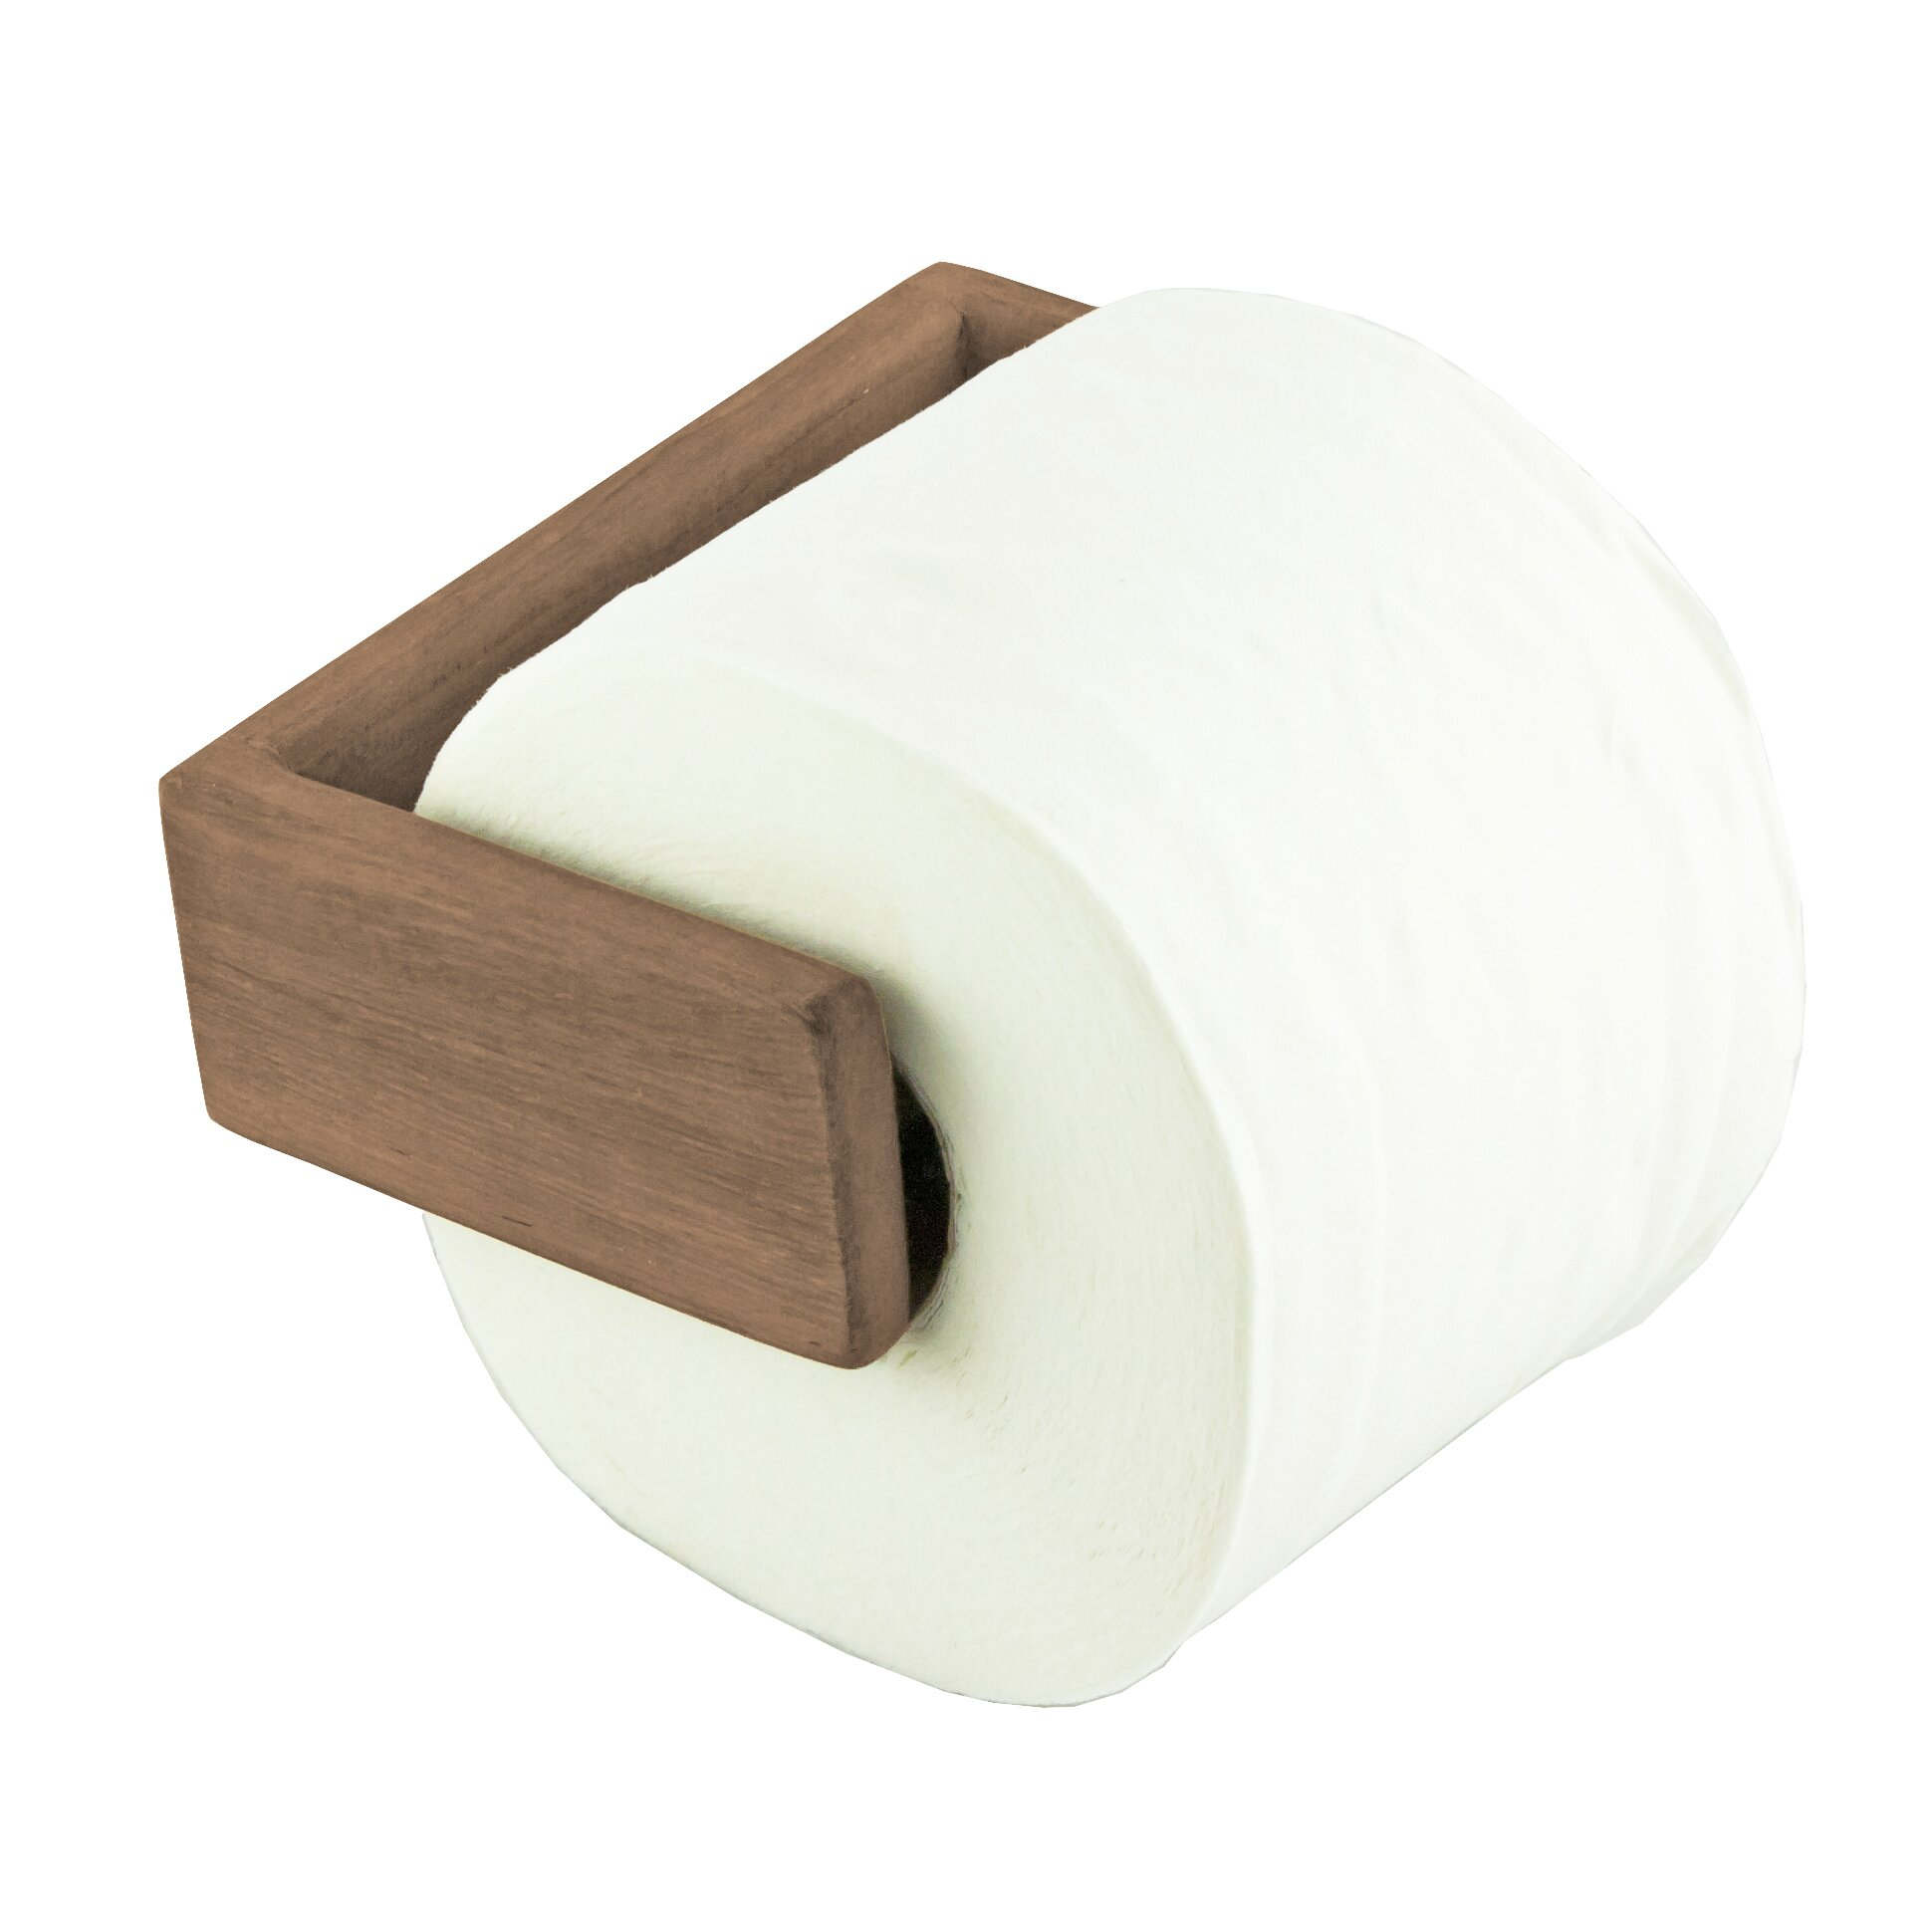 Seateak Wall Mounted Toilet Paper Holder Reviews Wayfair